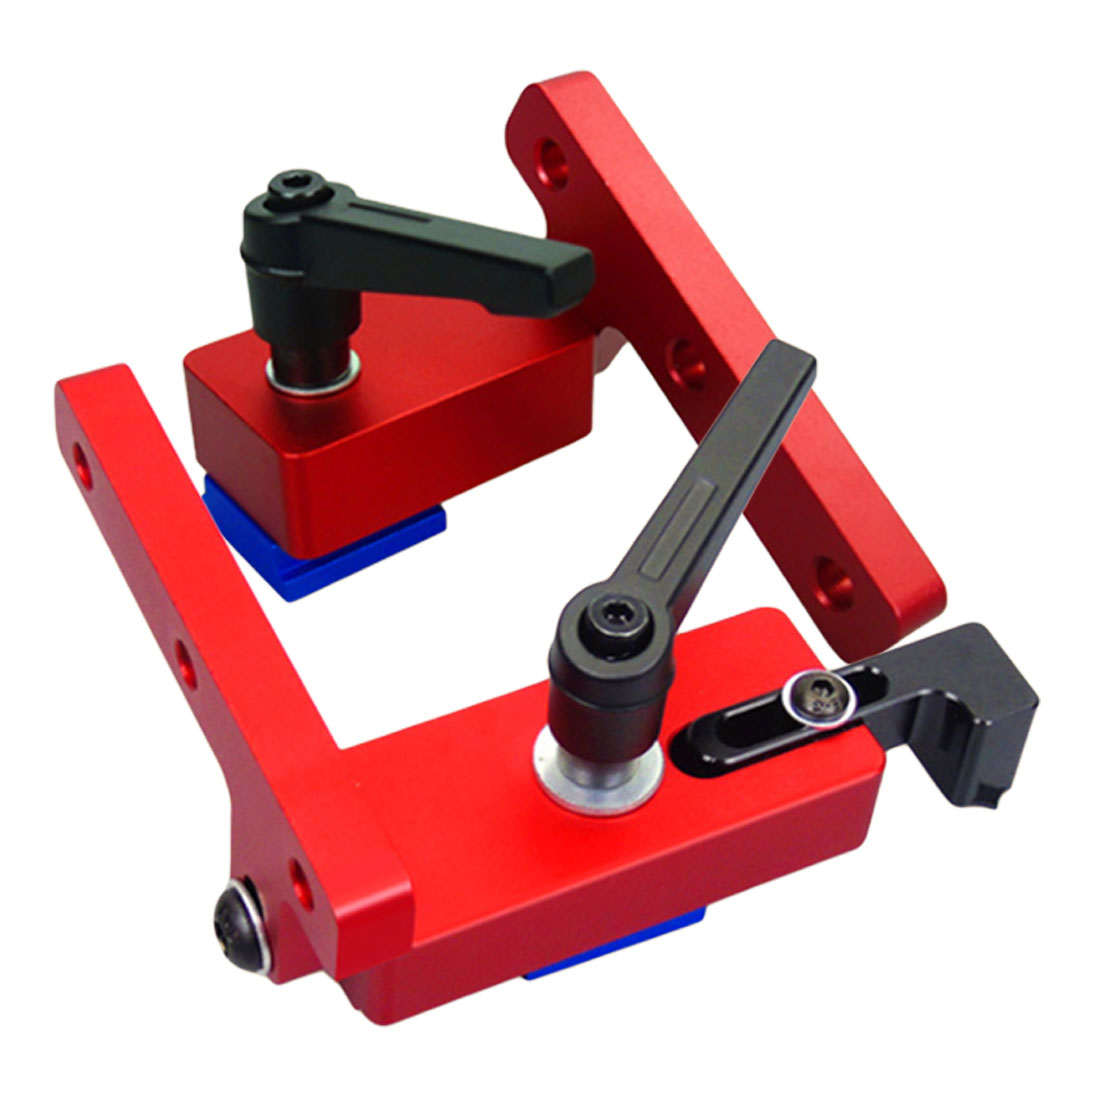 Flip Stop Aluminium T-Track Stop With Adjustable Scale Mechanism For 30mm 45mm T-track